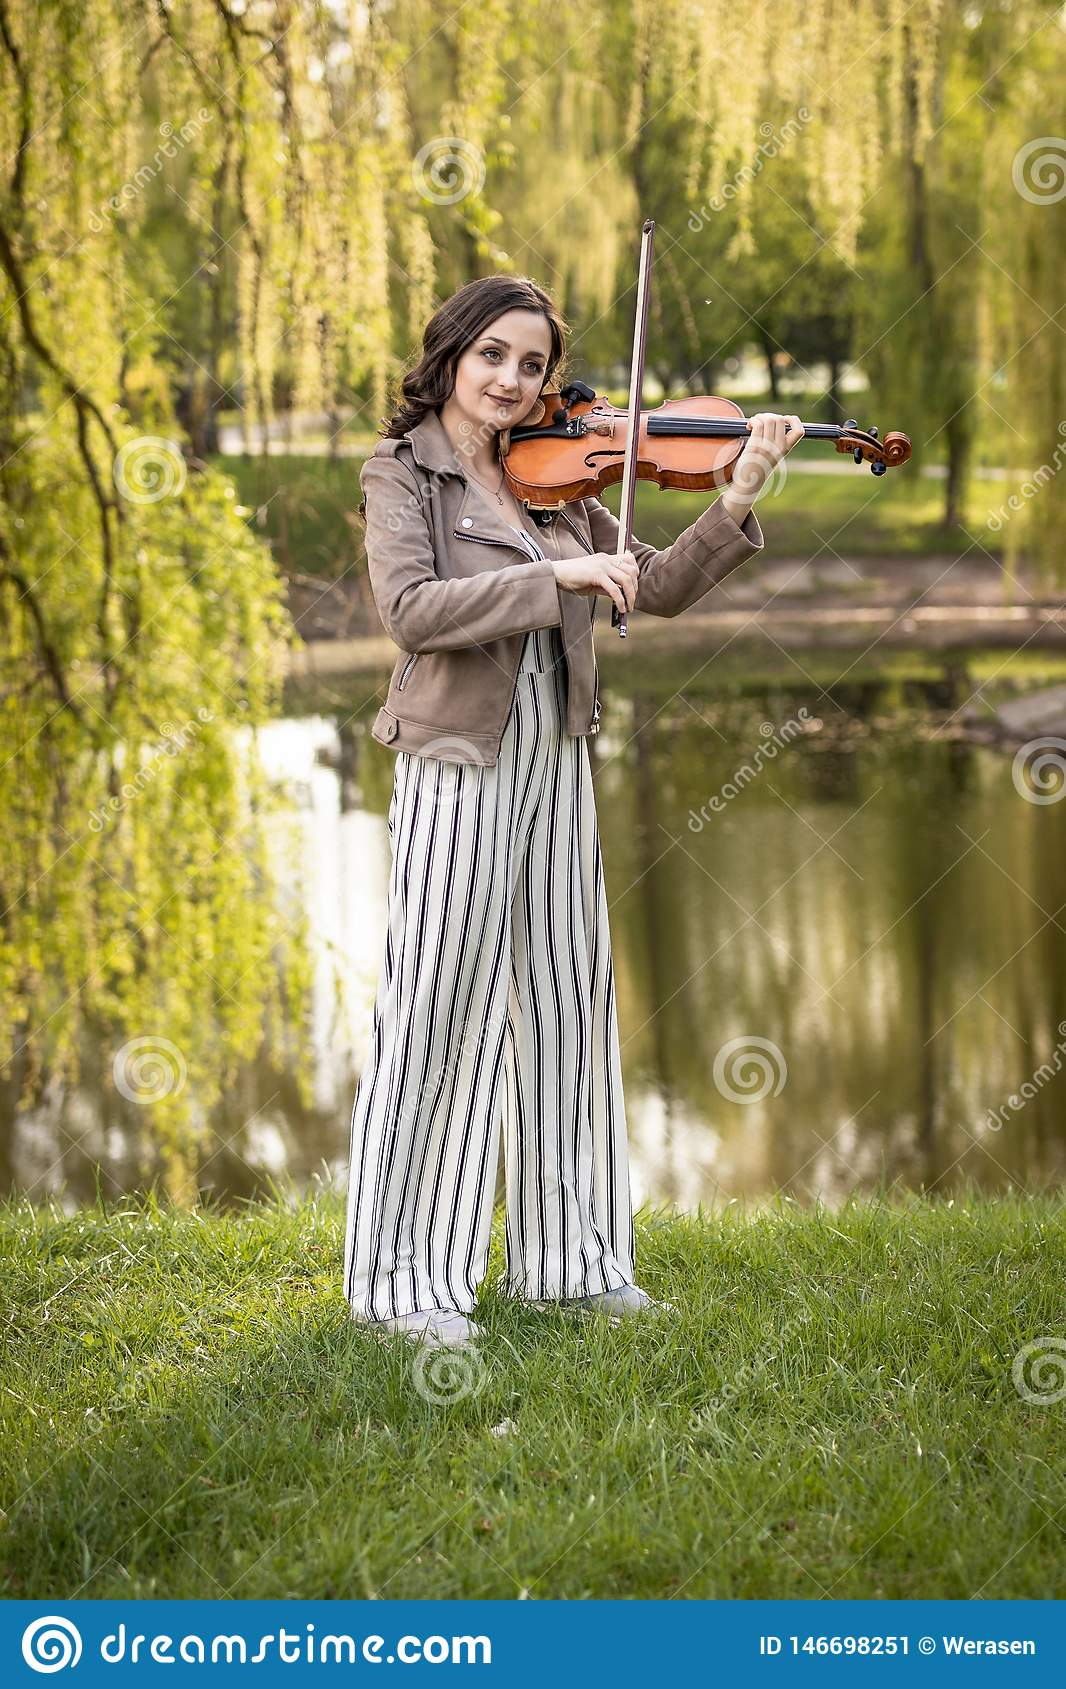 Fashionable young woman playing the violin in the park. The general plan